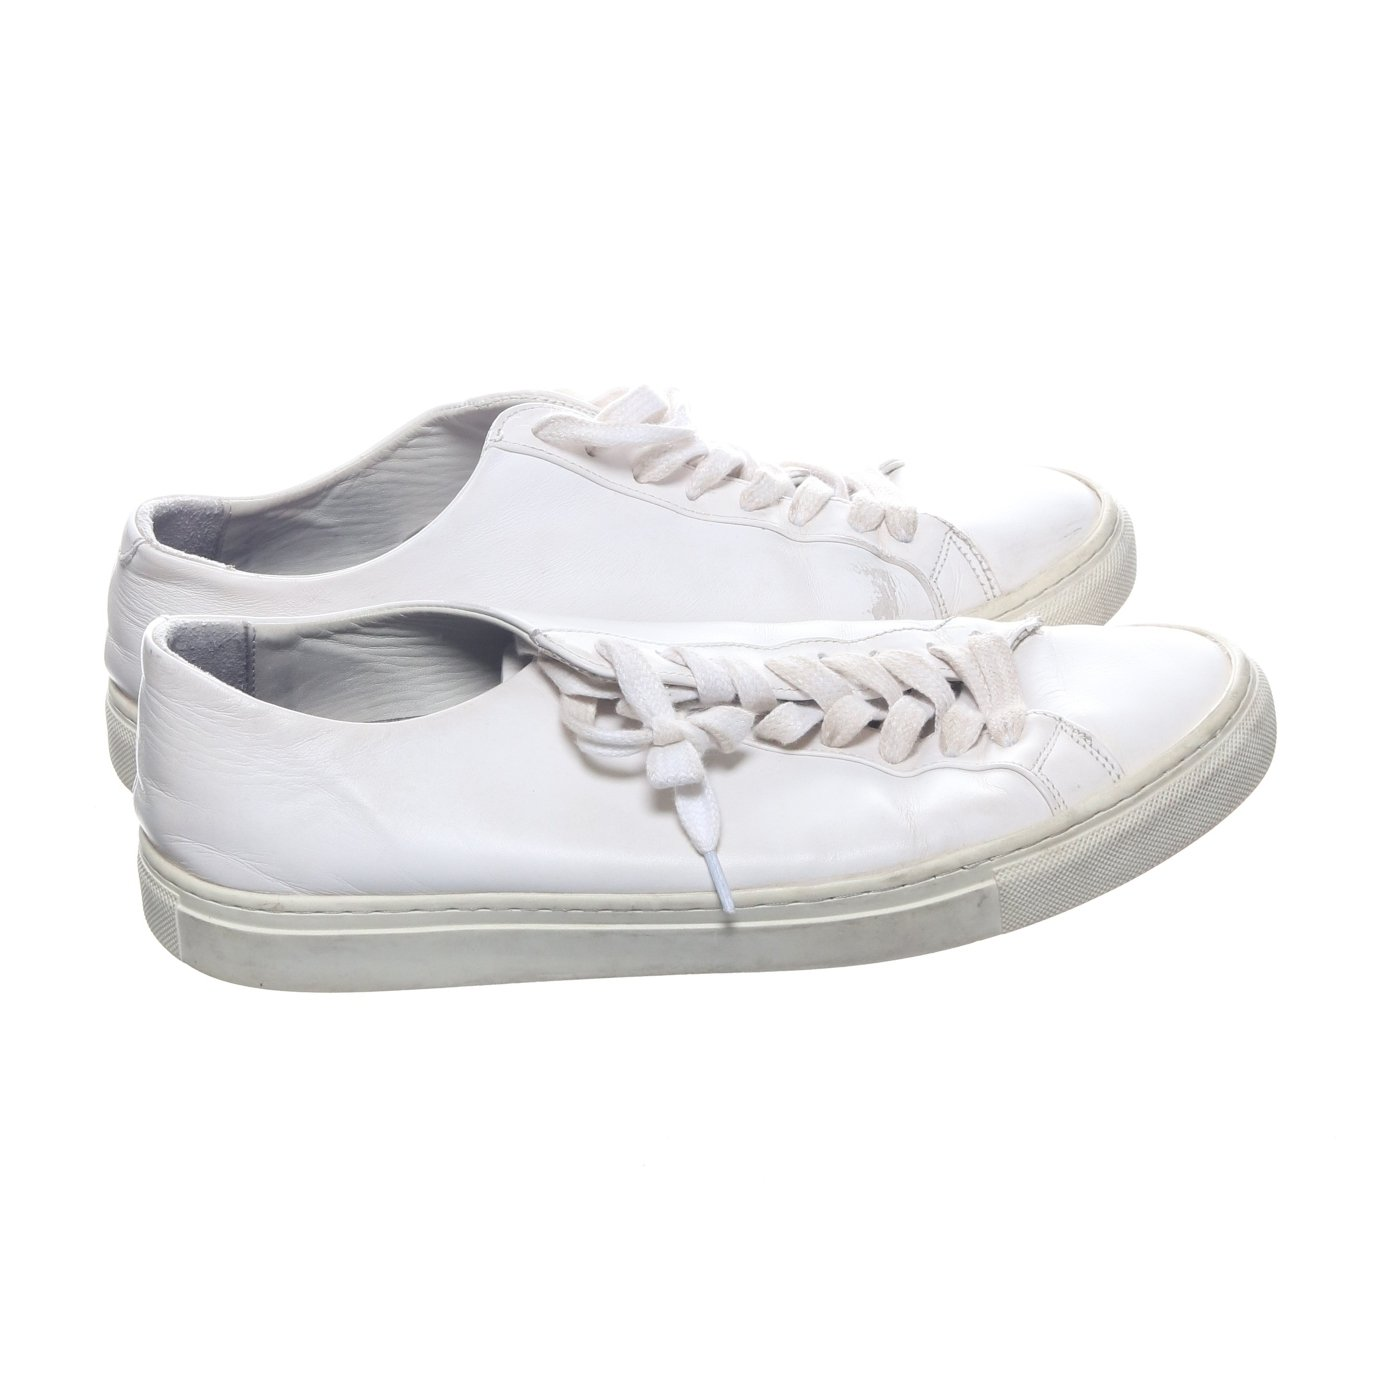 Filippa K, Sneakers, Strl: 42, Morgan, Vit